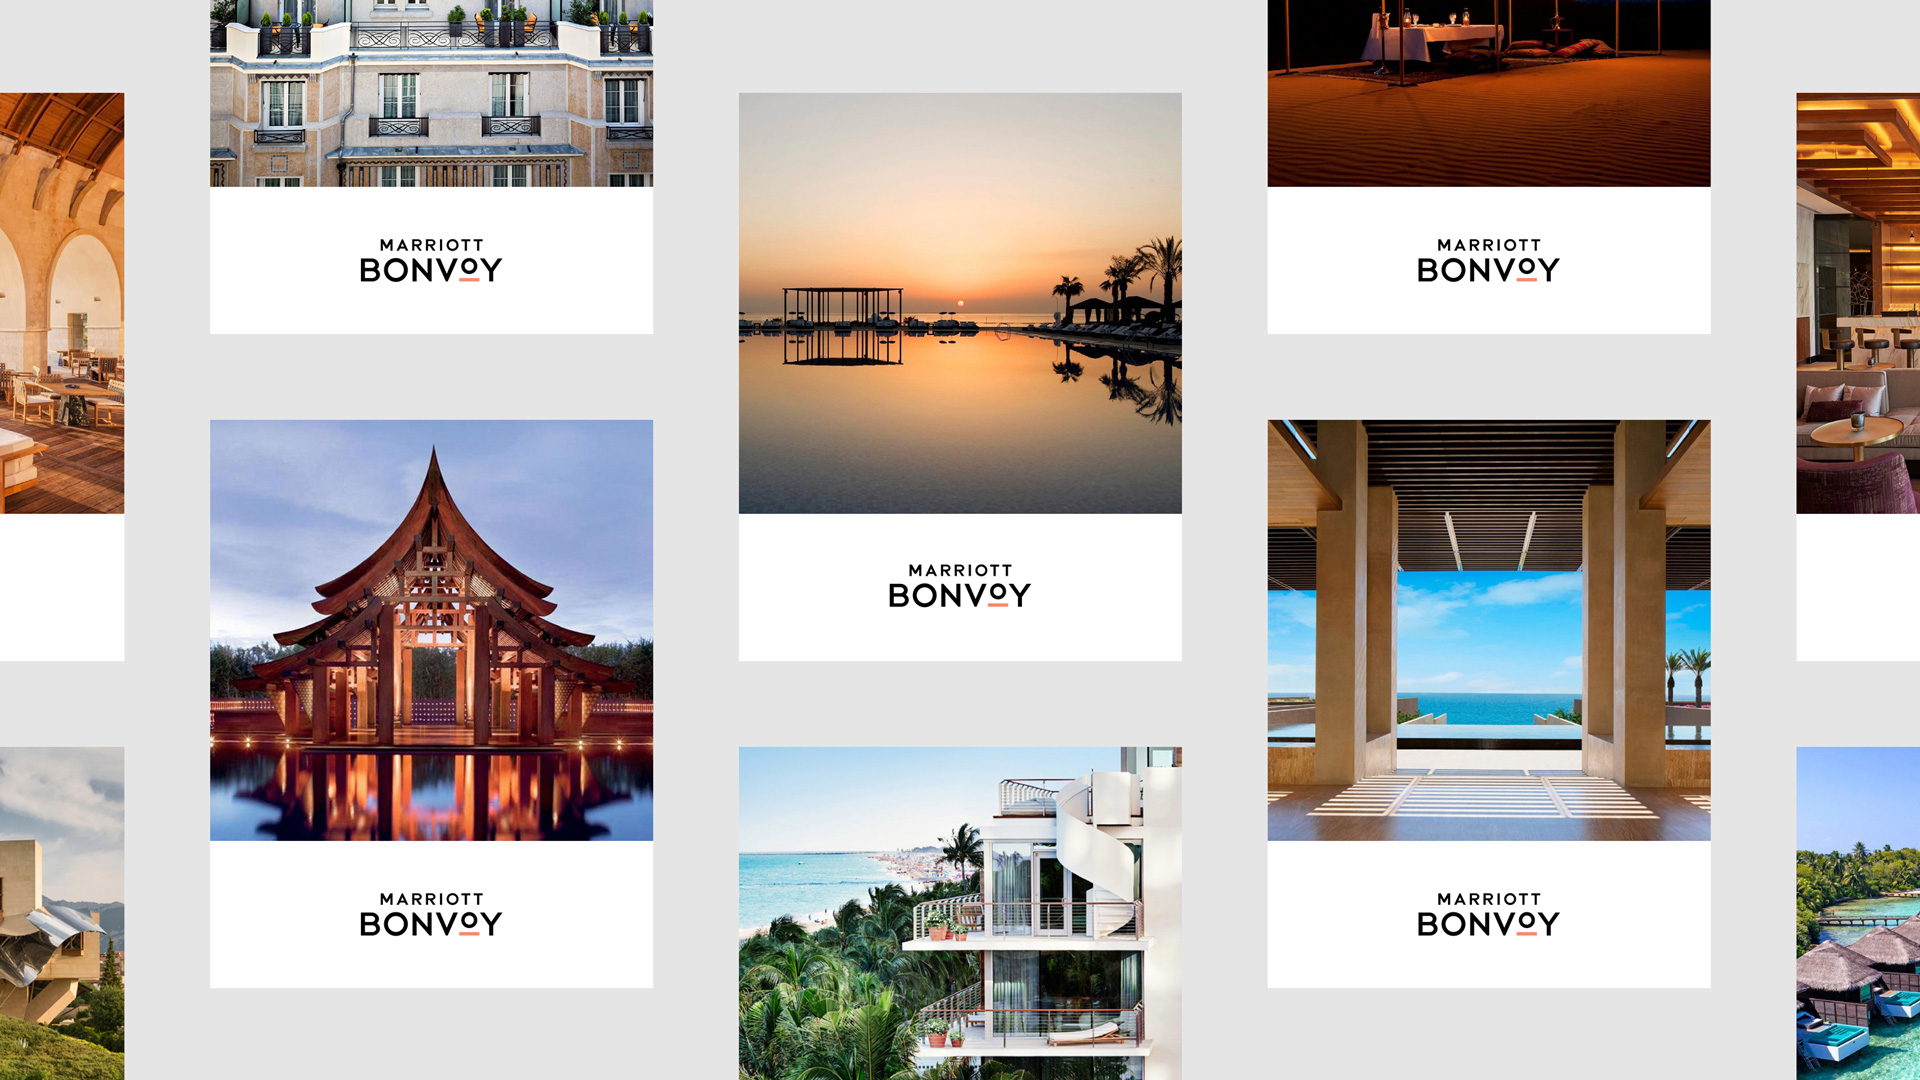 marriott_bonvoy_postcards.jpg